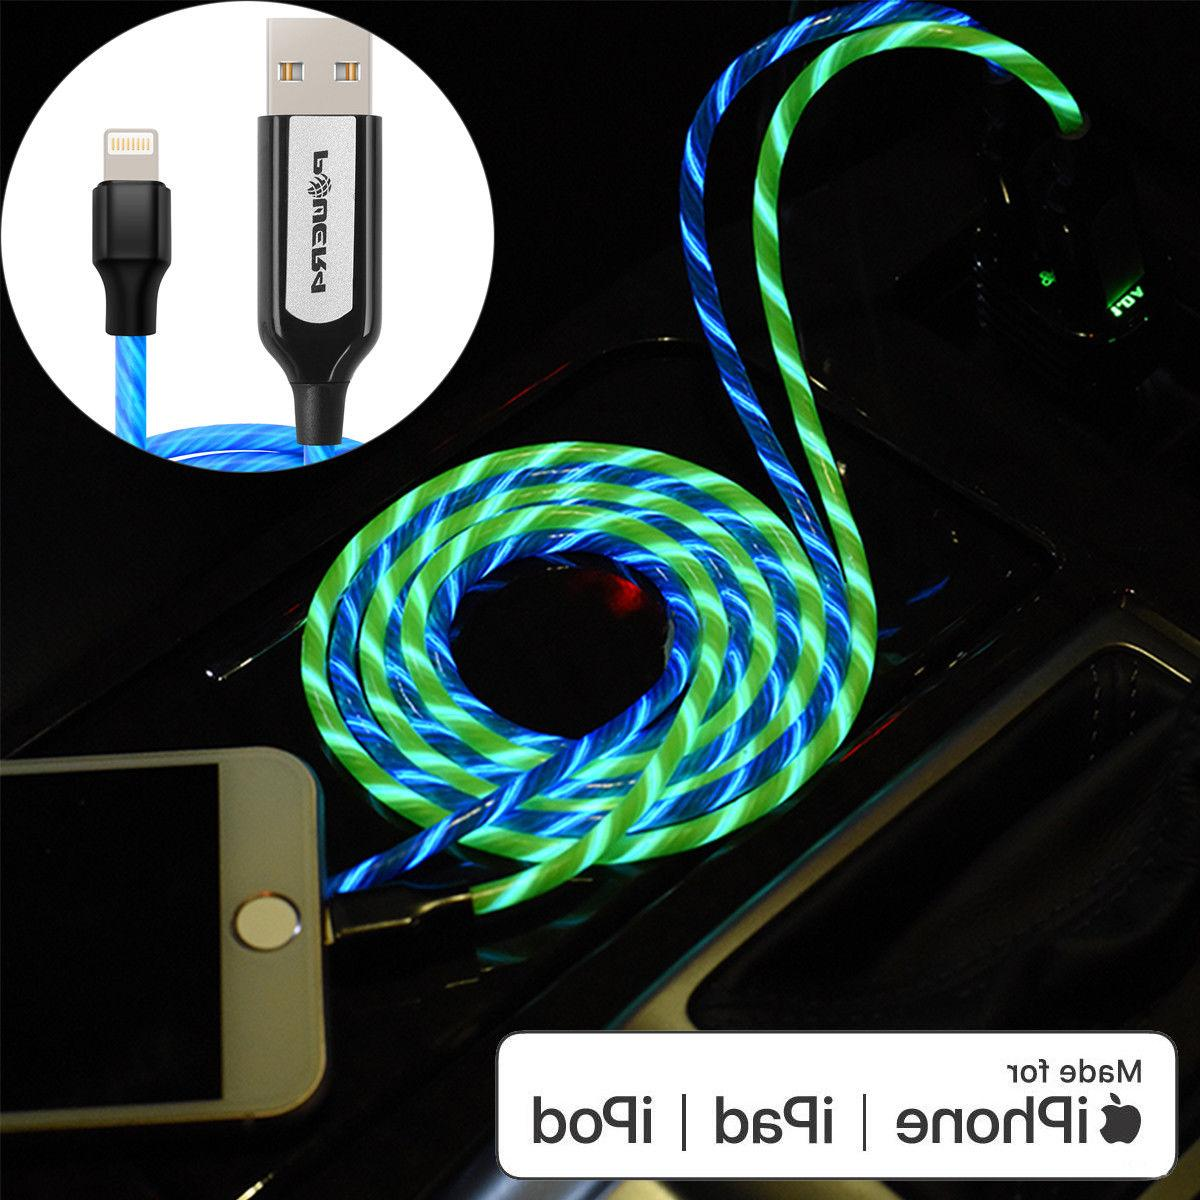 Flow LED Light-up EL USB Lightning Charger Cable for iPhone